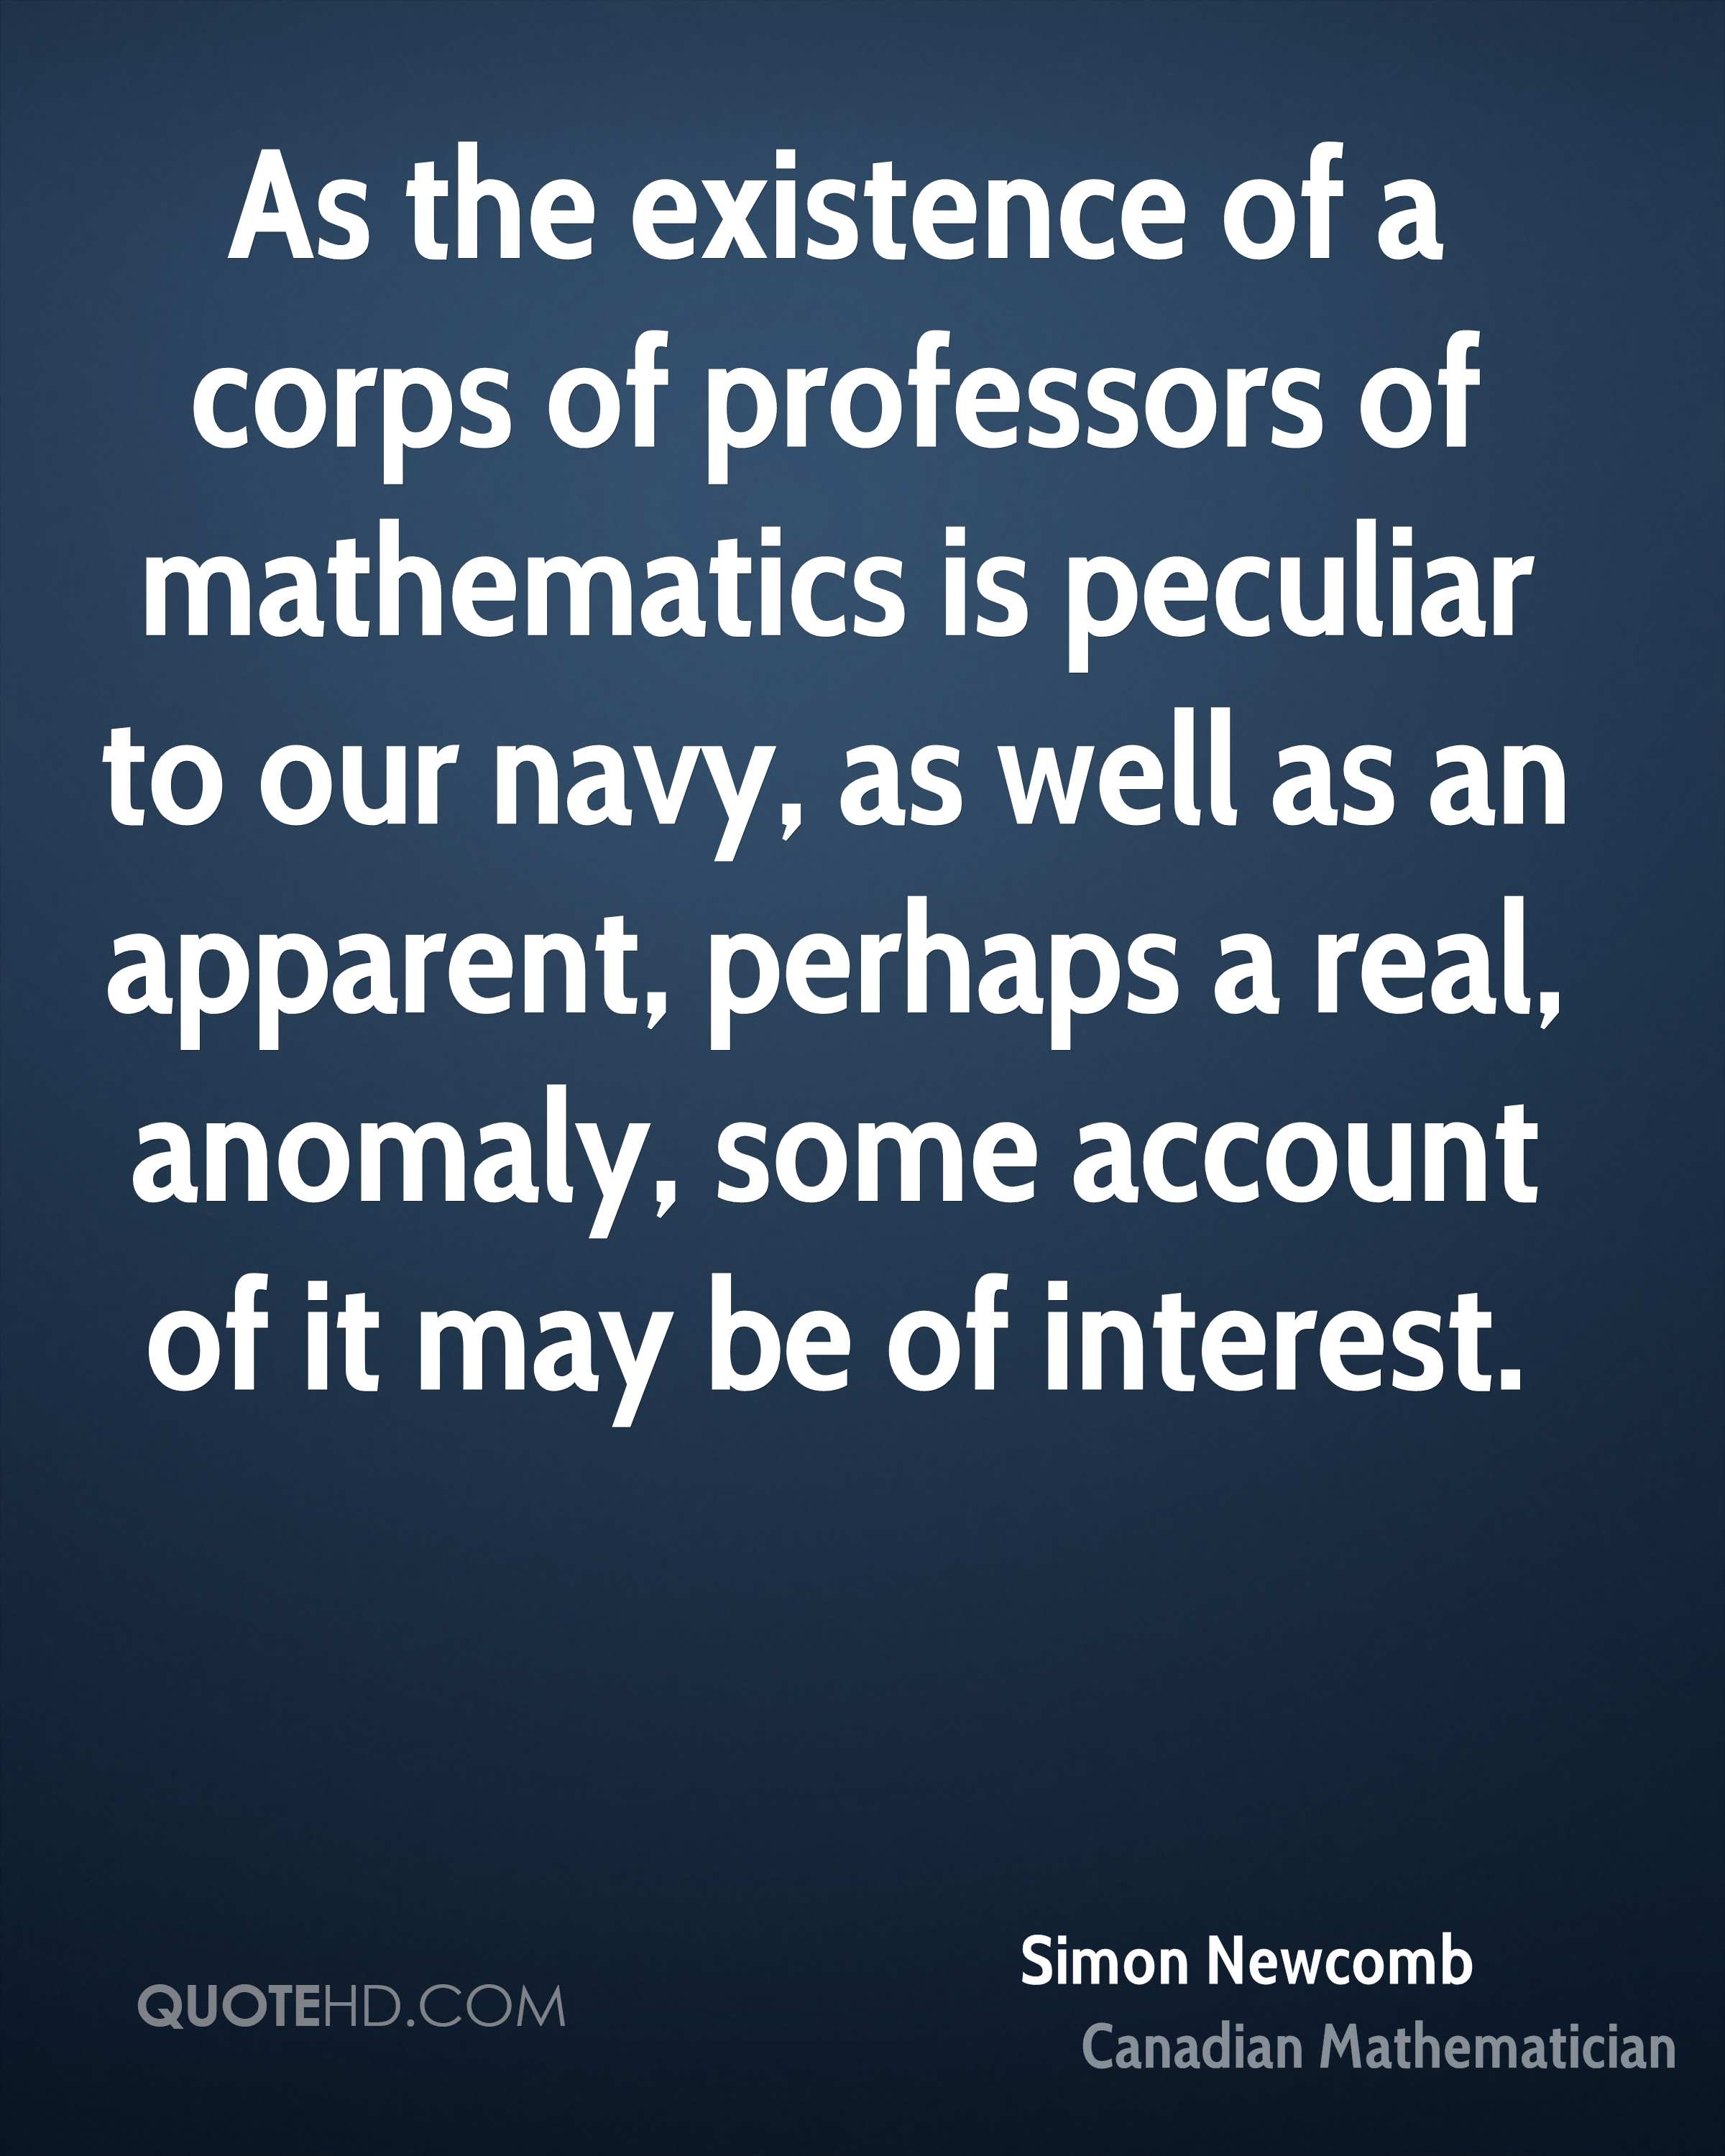 As the existence of a corps of professors of mathematics is peculiar to our navy, as well as an apparent, perhaps a real, anomaly, some account of it may be of interest.